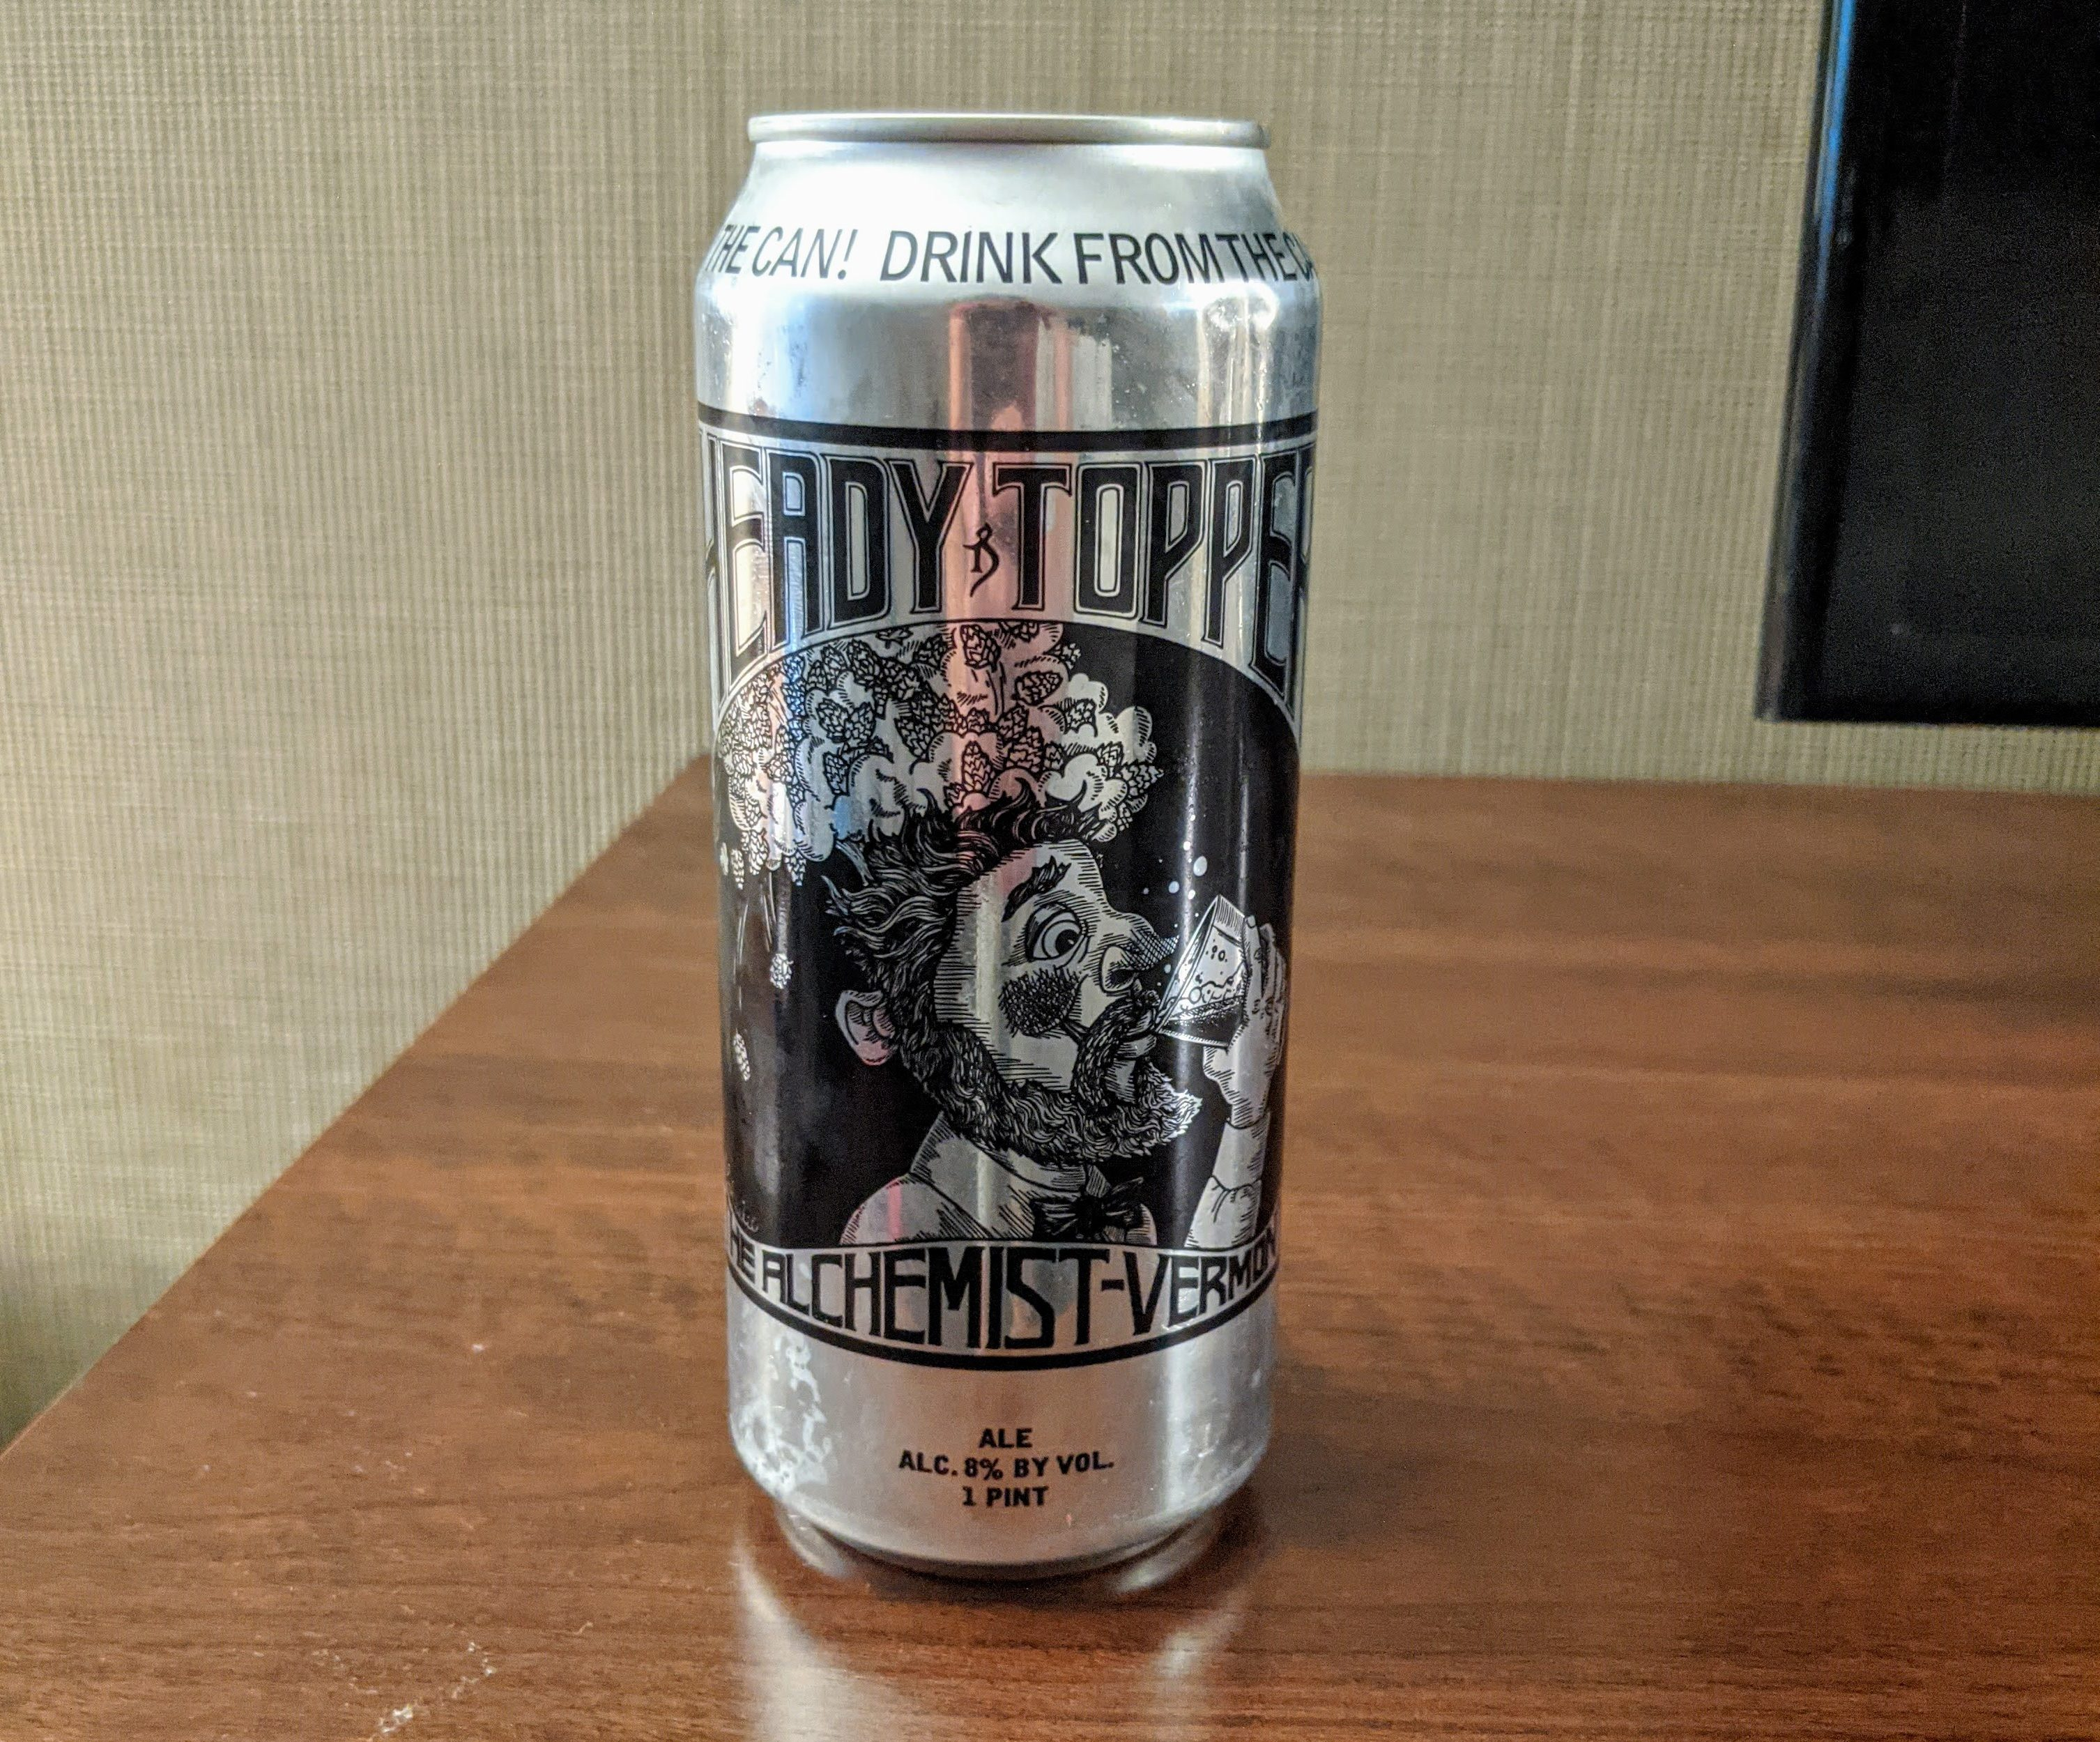 Heady Topper from the Alchemist Stowe